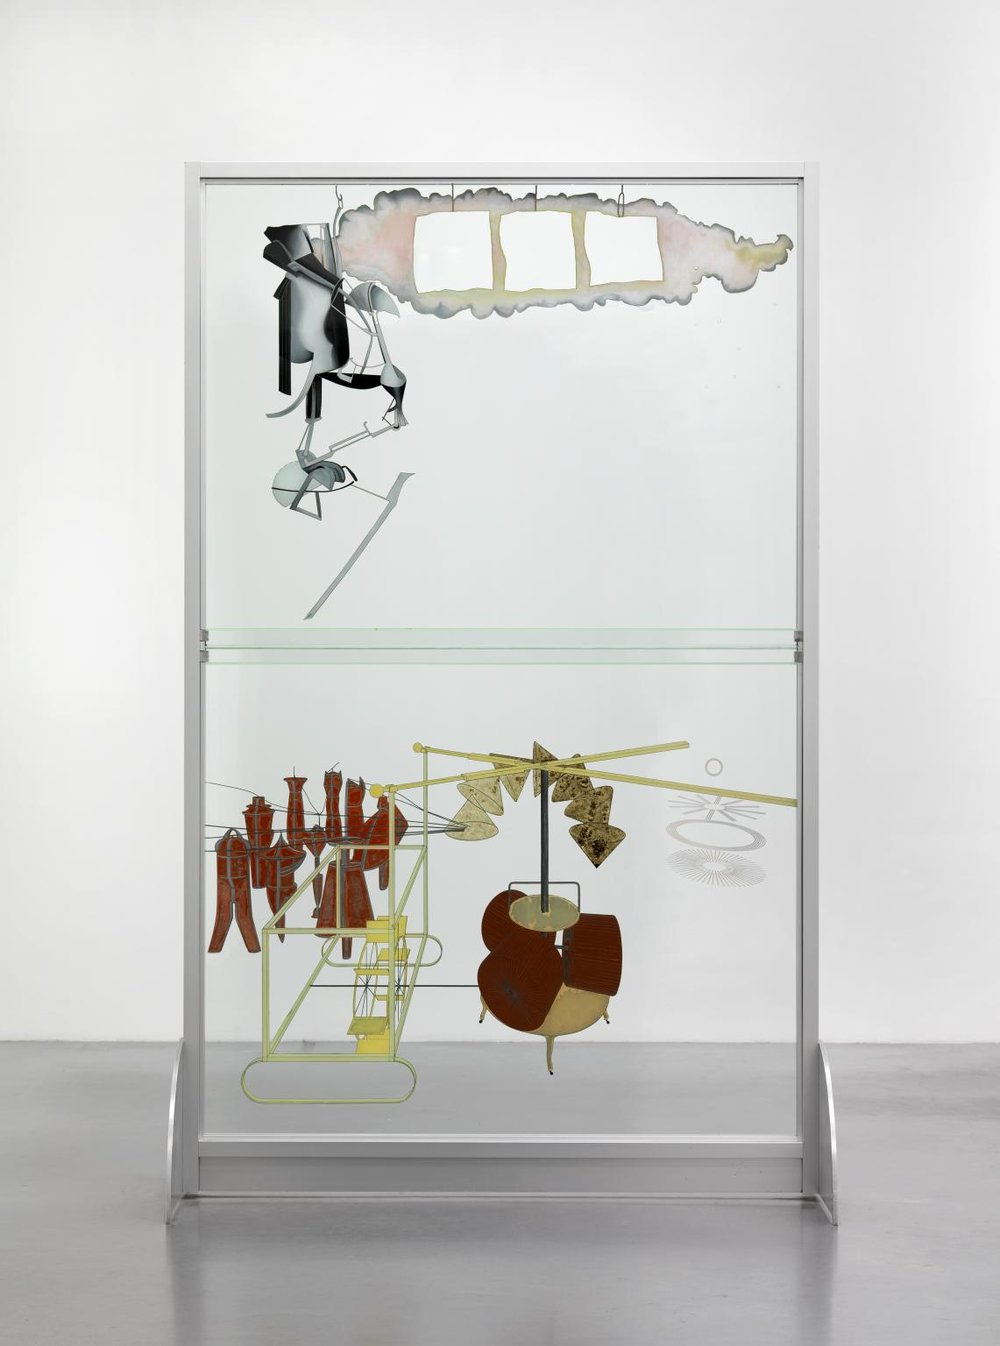 Marcel Duchamp (reconstruction by Richard Hamilton),The Bride Stripped Bare by Her Bachelors, Even (La mariée mise à nu par ses célibataires, même), known as The Large Glass, 1915 (reconstructed in 1965–66 and 1985).